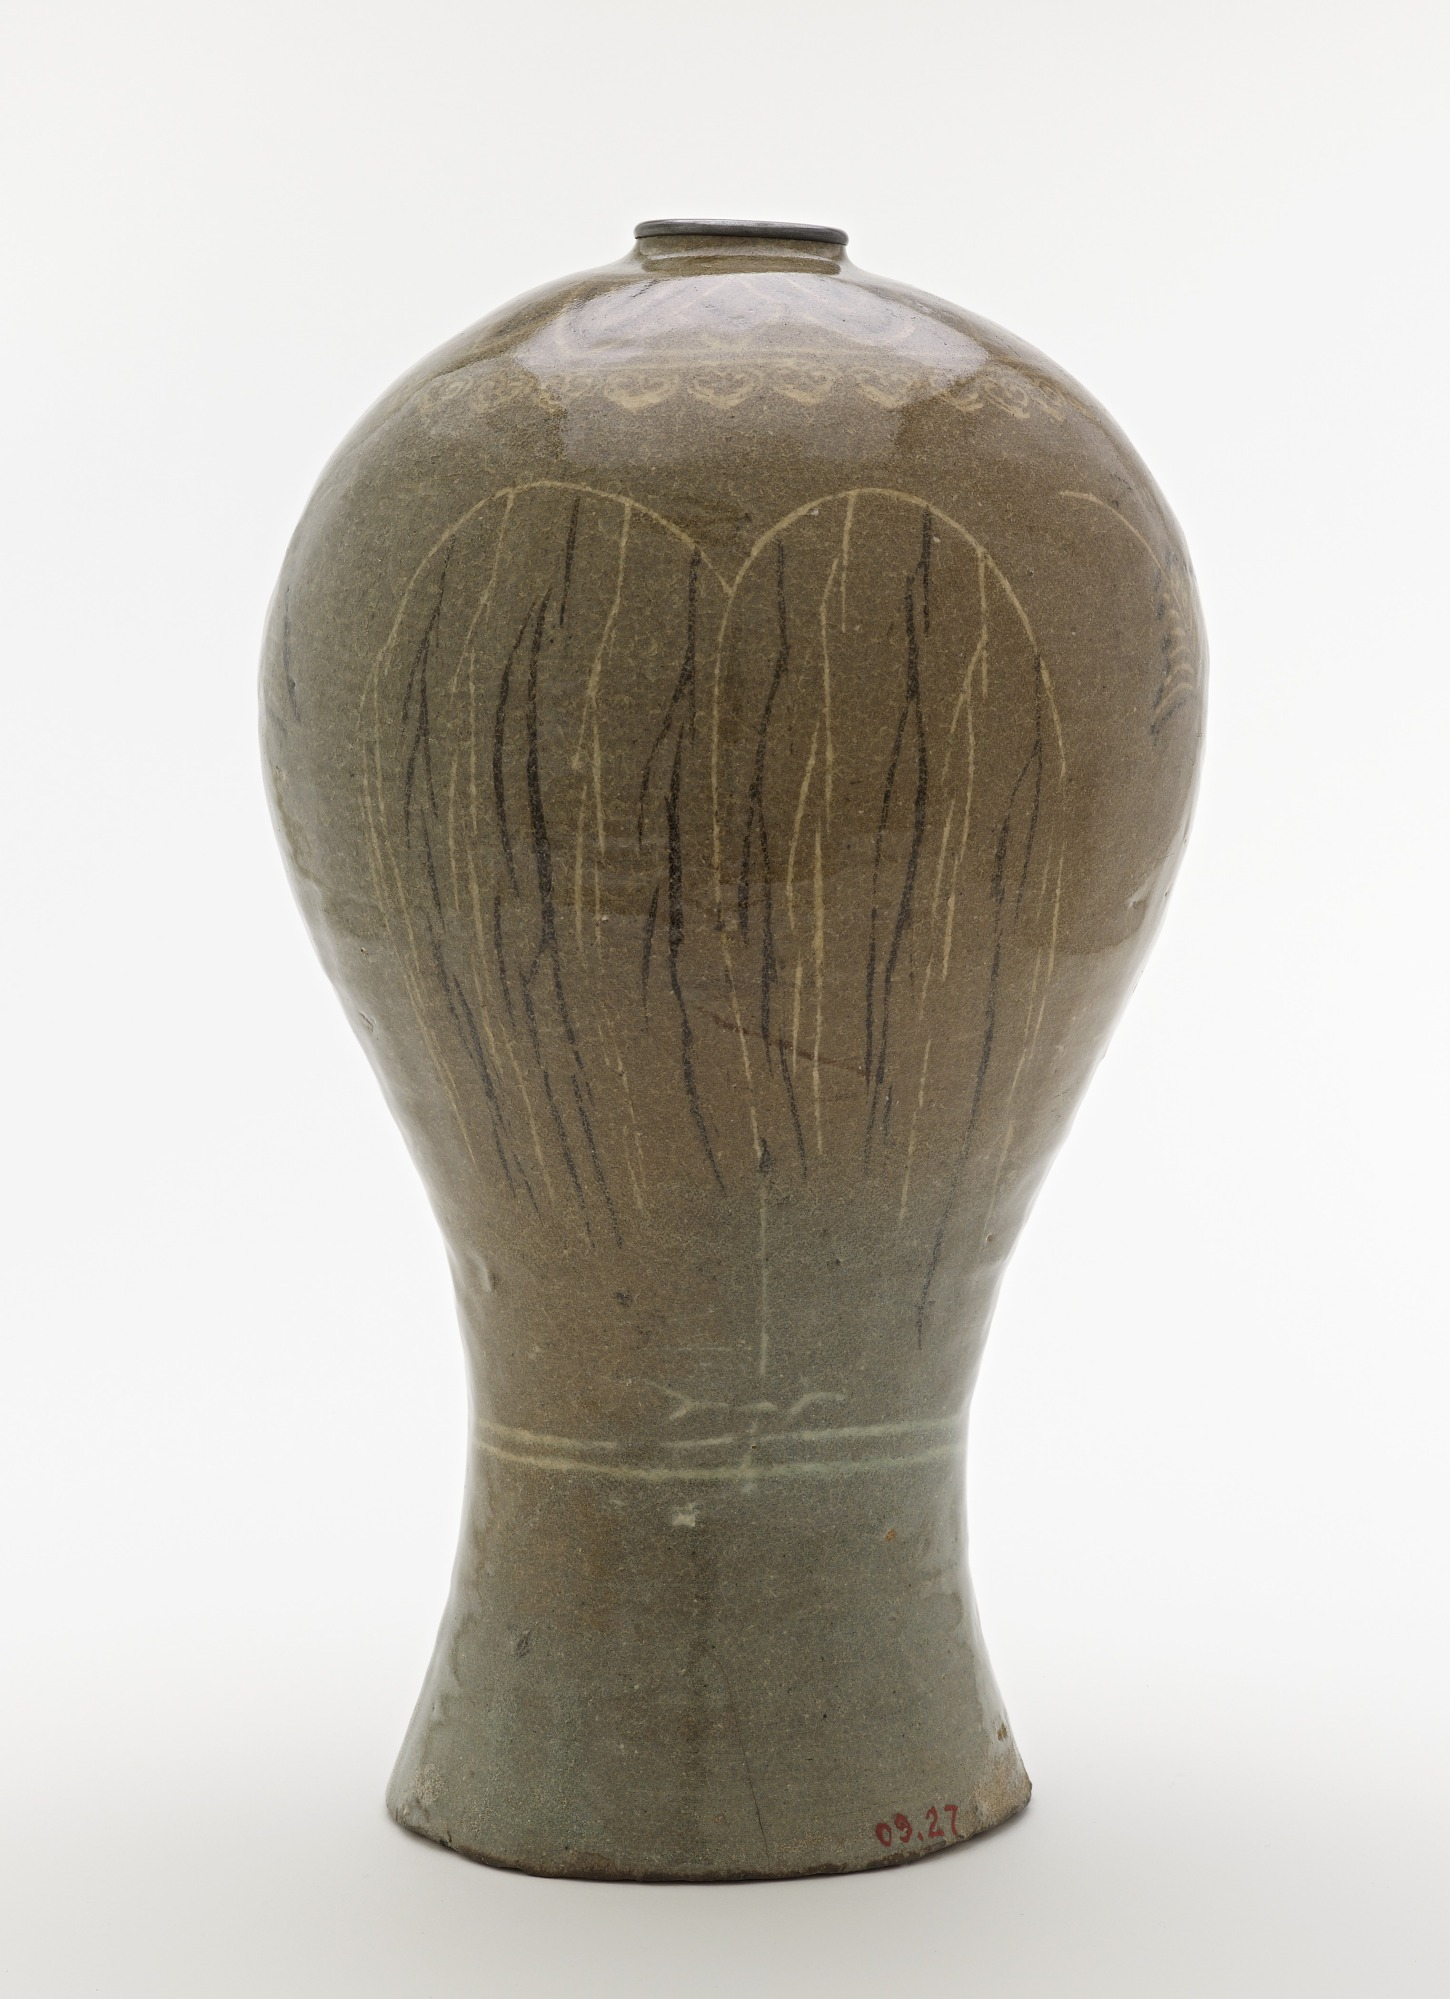 Bottle with inlaid design of willow trees and reeds, profile